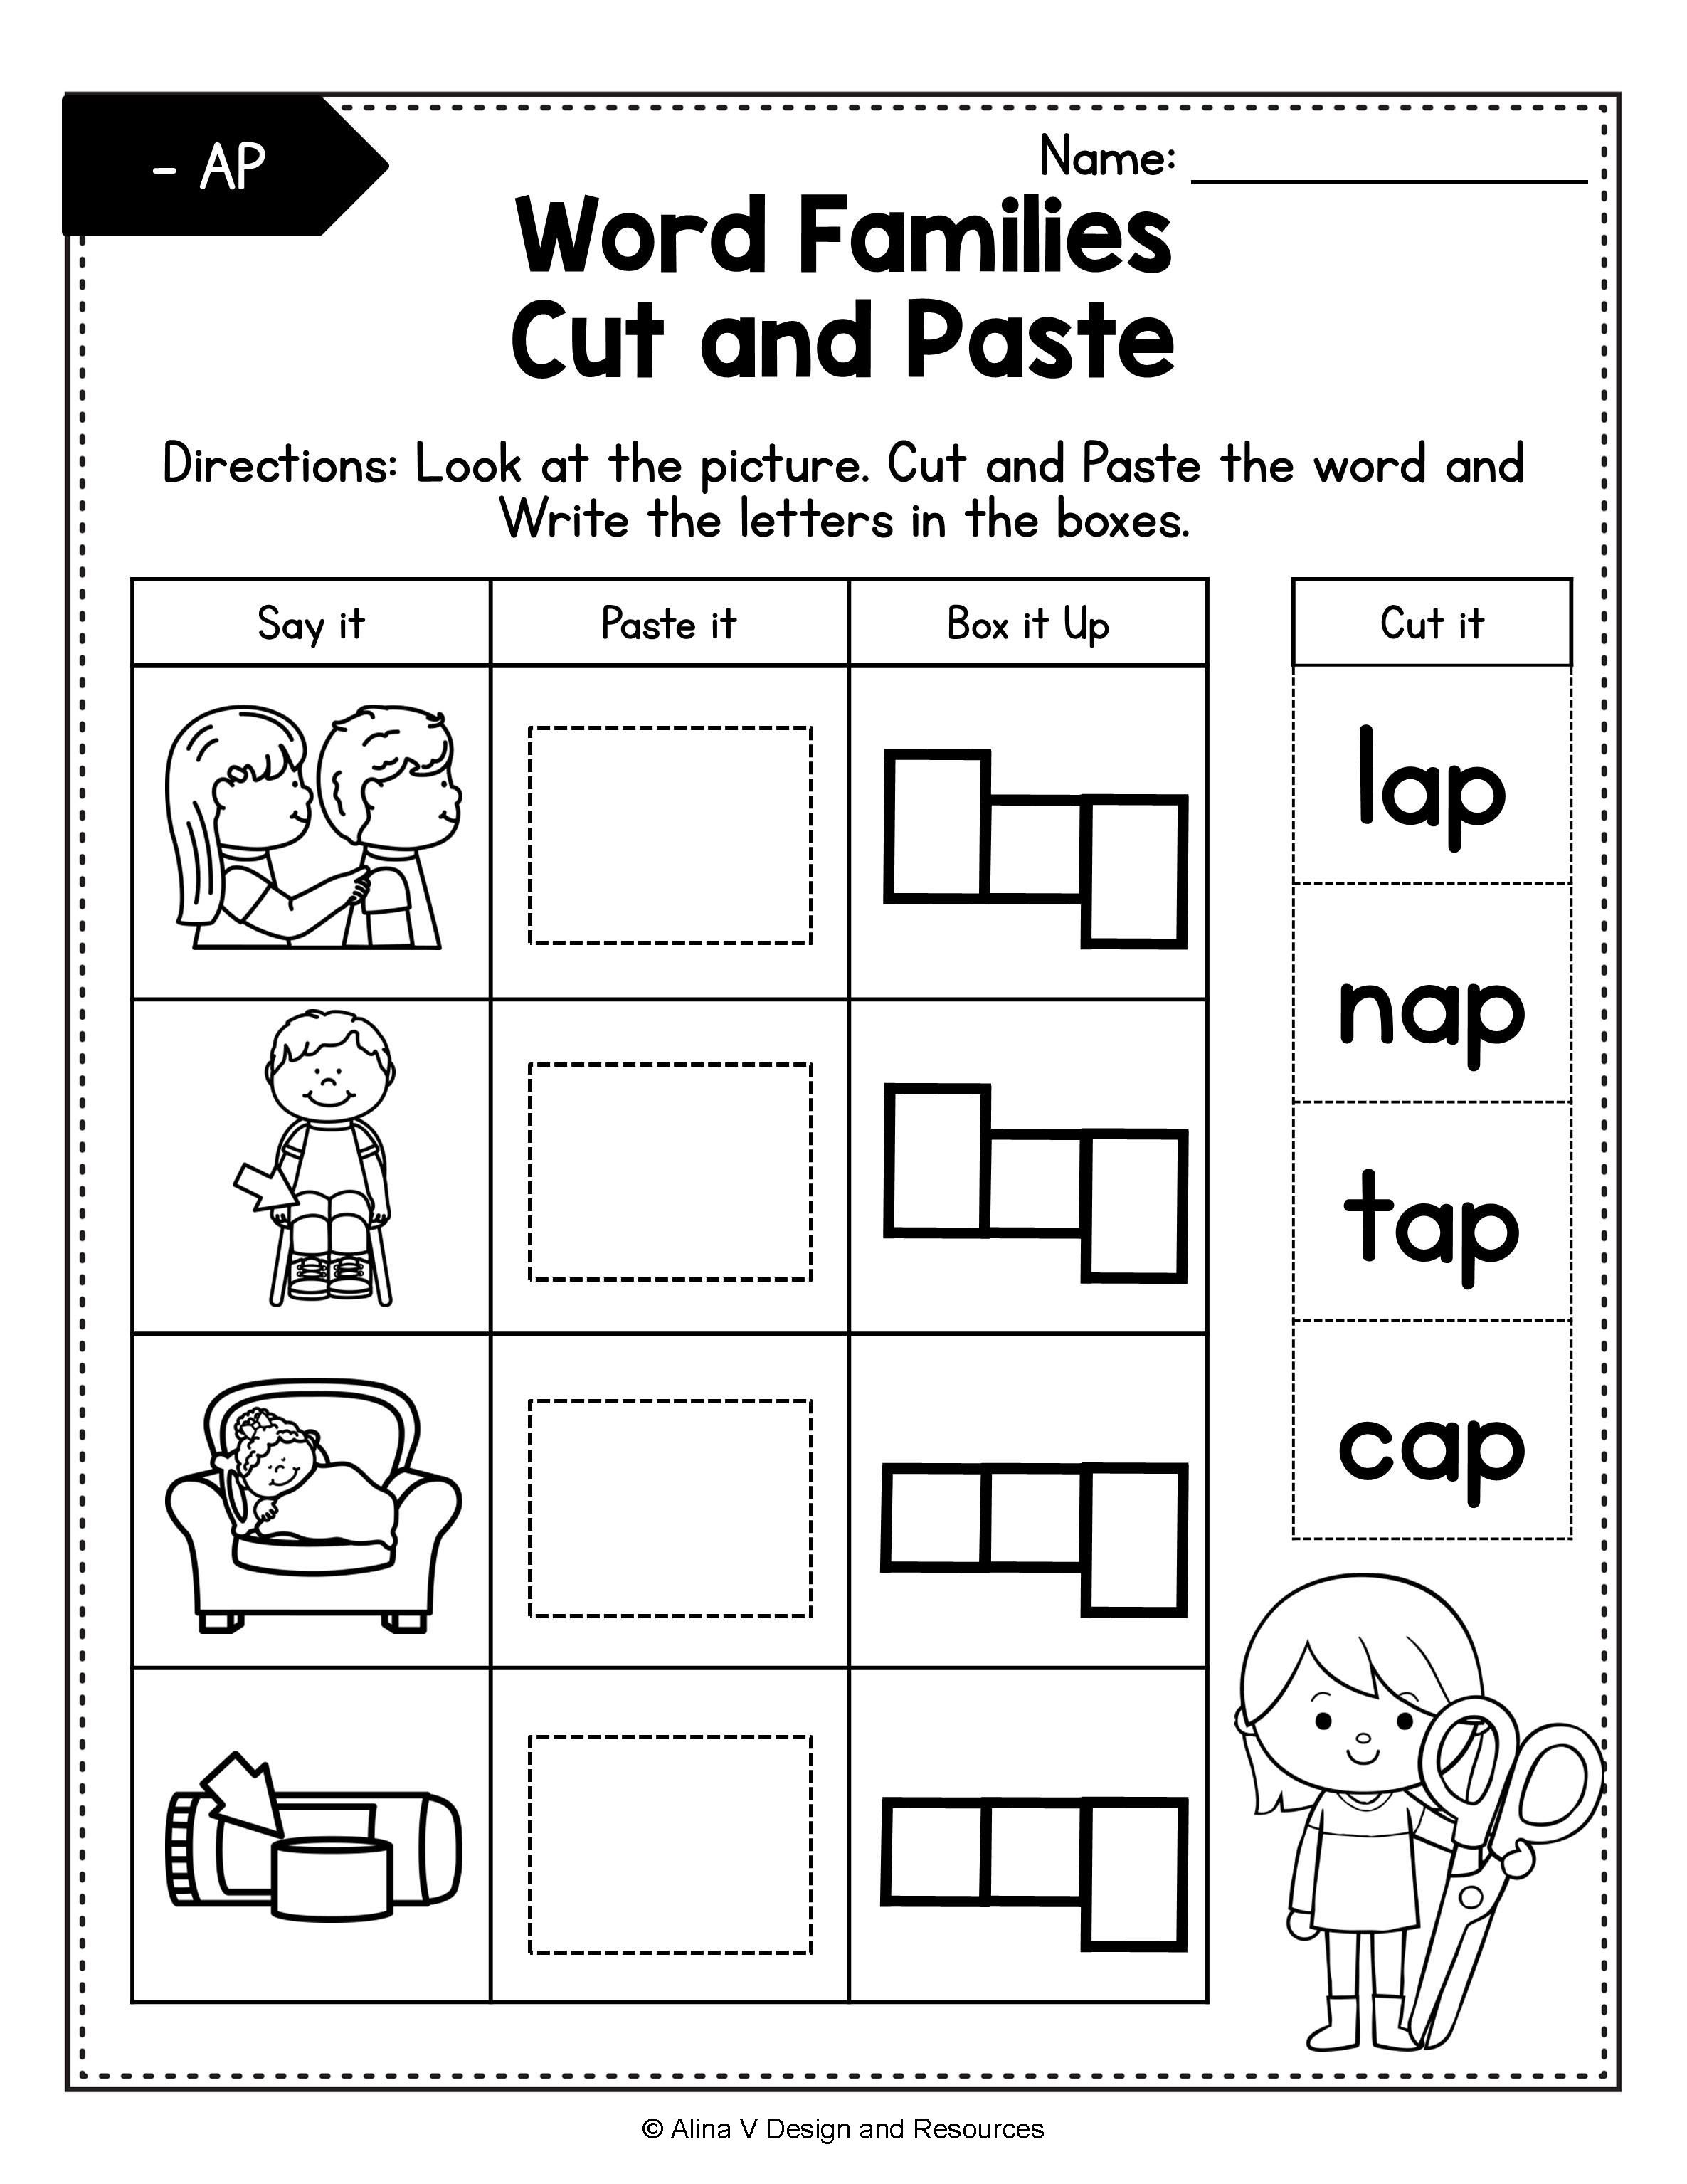 Distance Learning Cvc Words Worksheets Bundle Word Families Activities In 2020 Cvc Words Word Families Blend Cvc Words